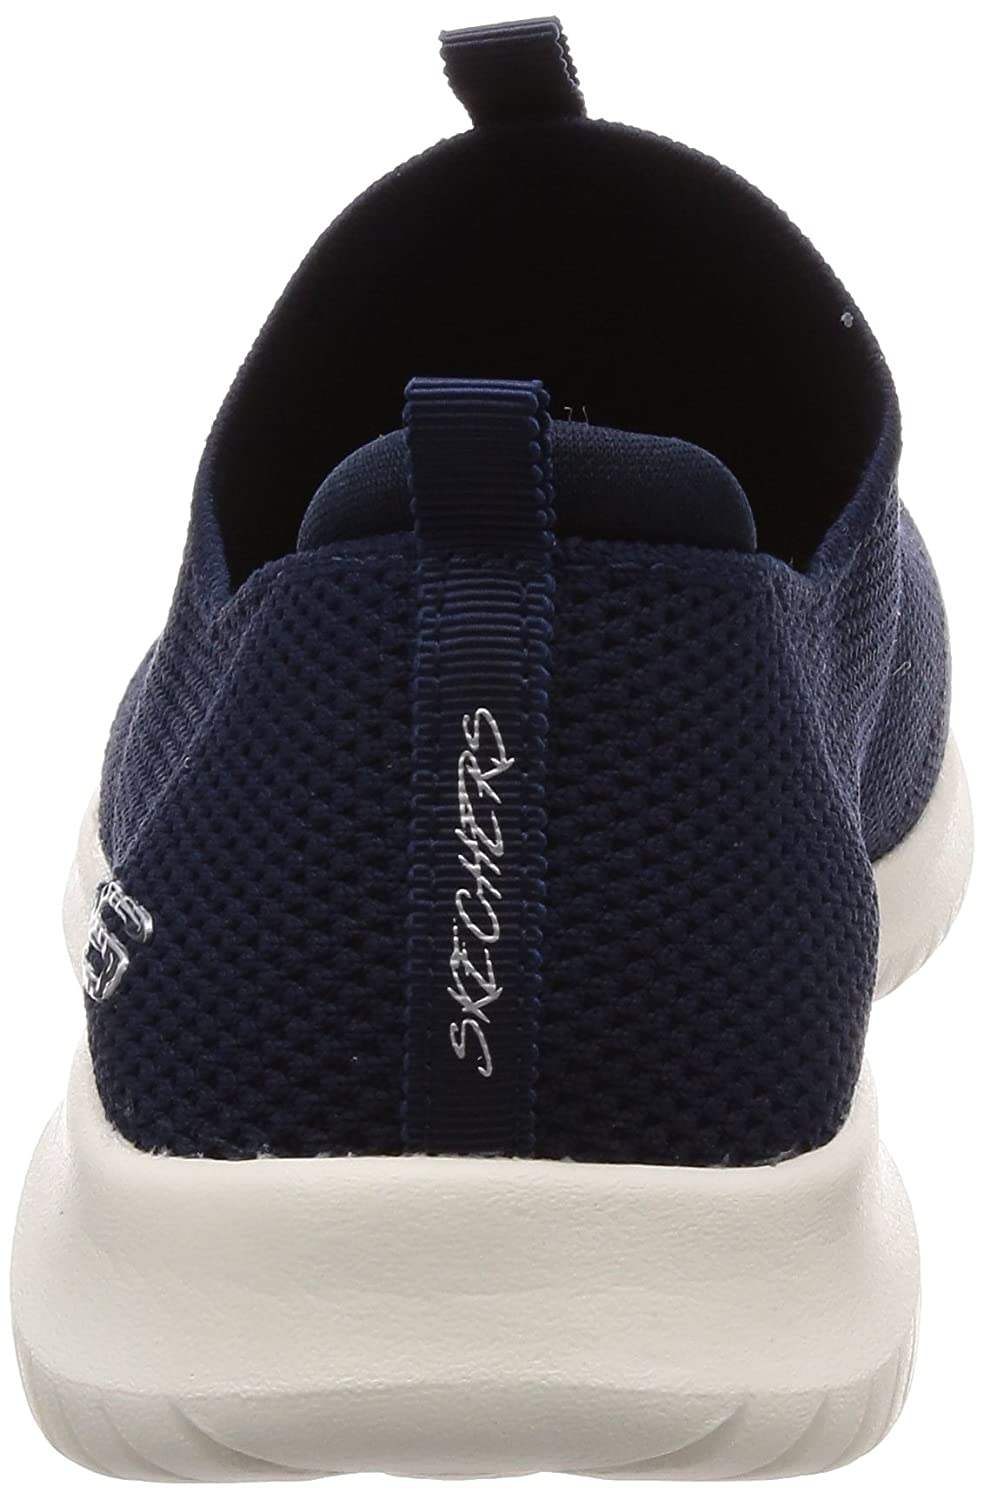 2689c9dcebbd Skechers Women s 12837 Slip On Trainers  Amazon.co.uk  Shoes   Bags